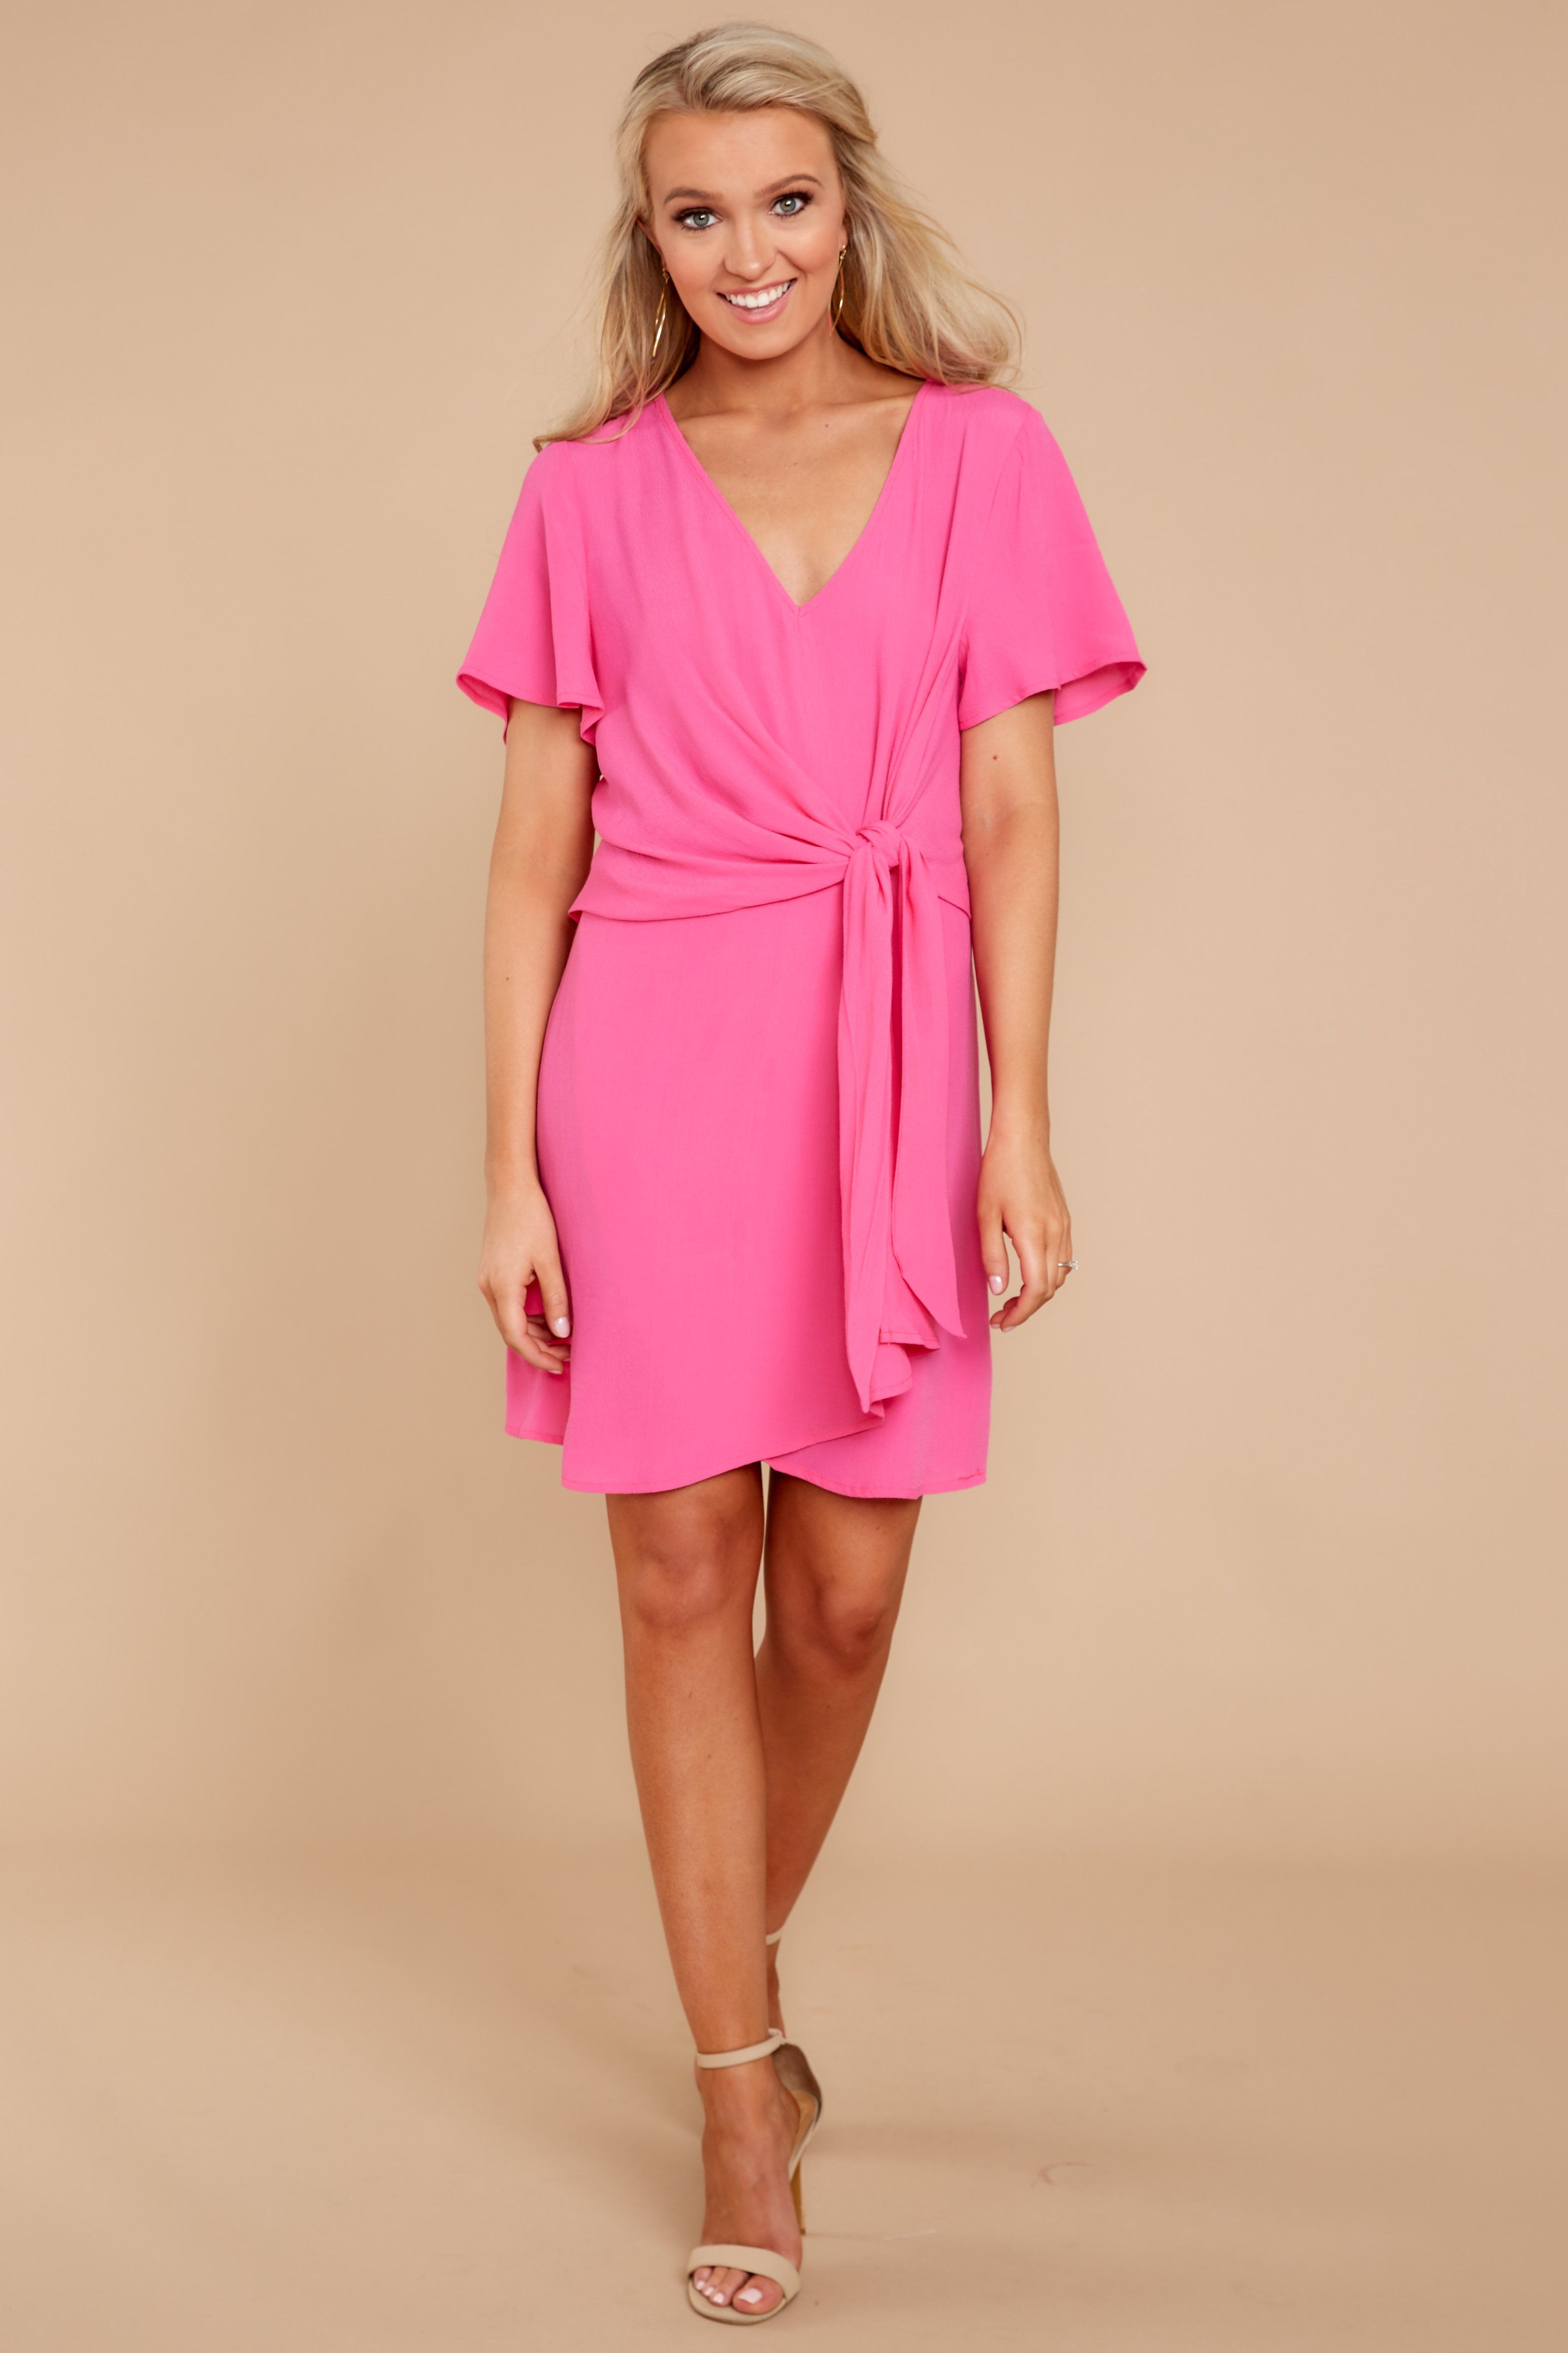 bec7d7b7e5987 Right In Time Fuchsia Pink Dress